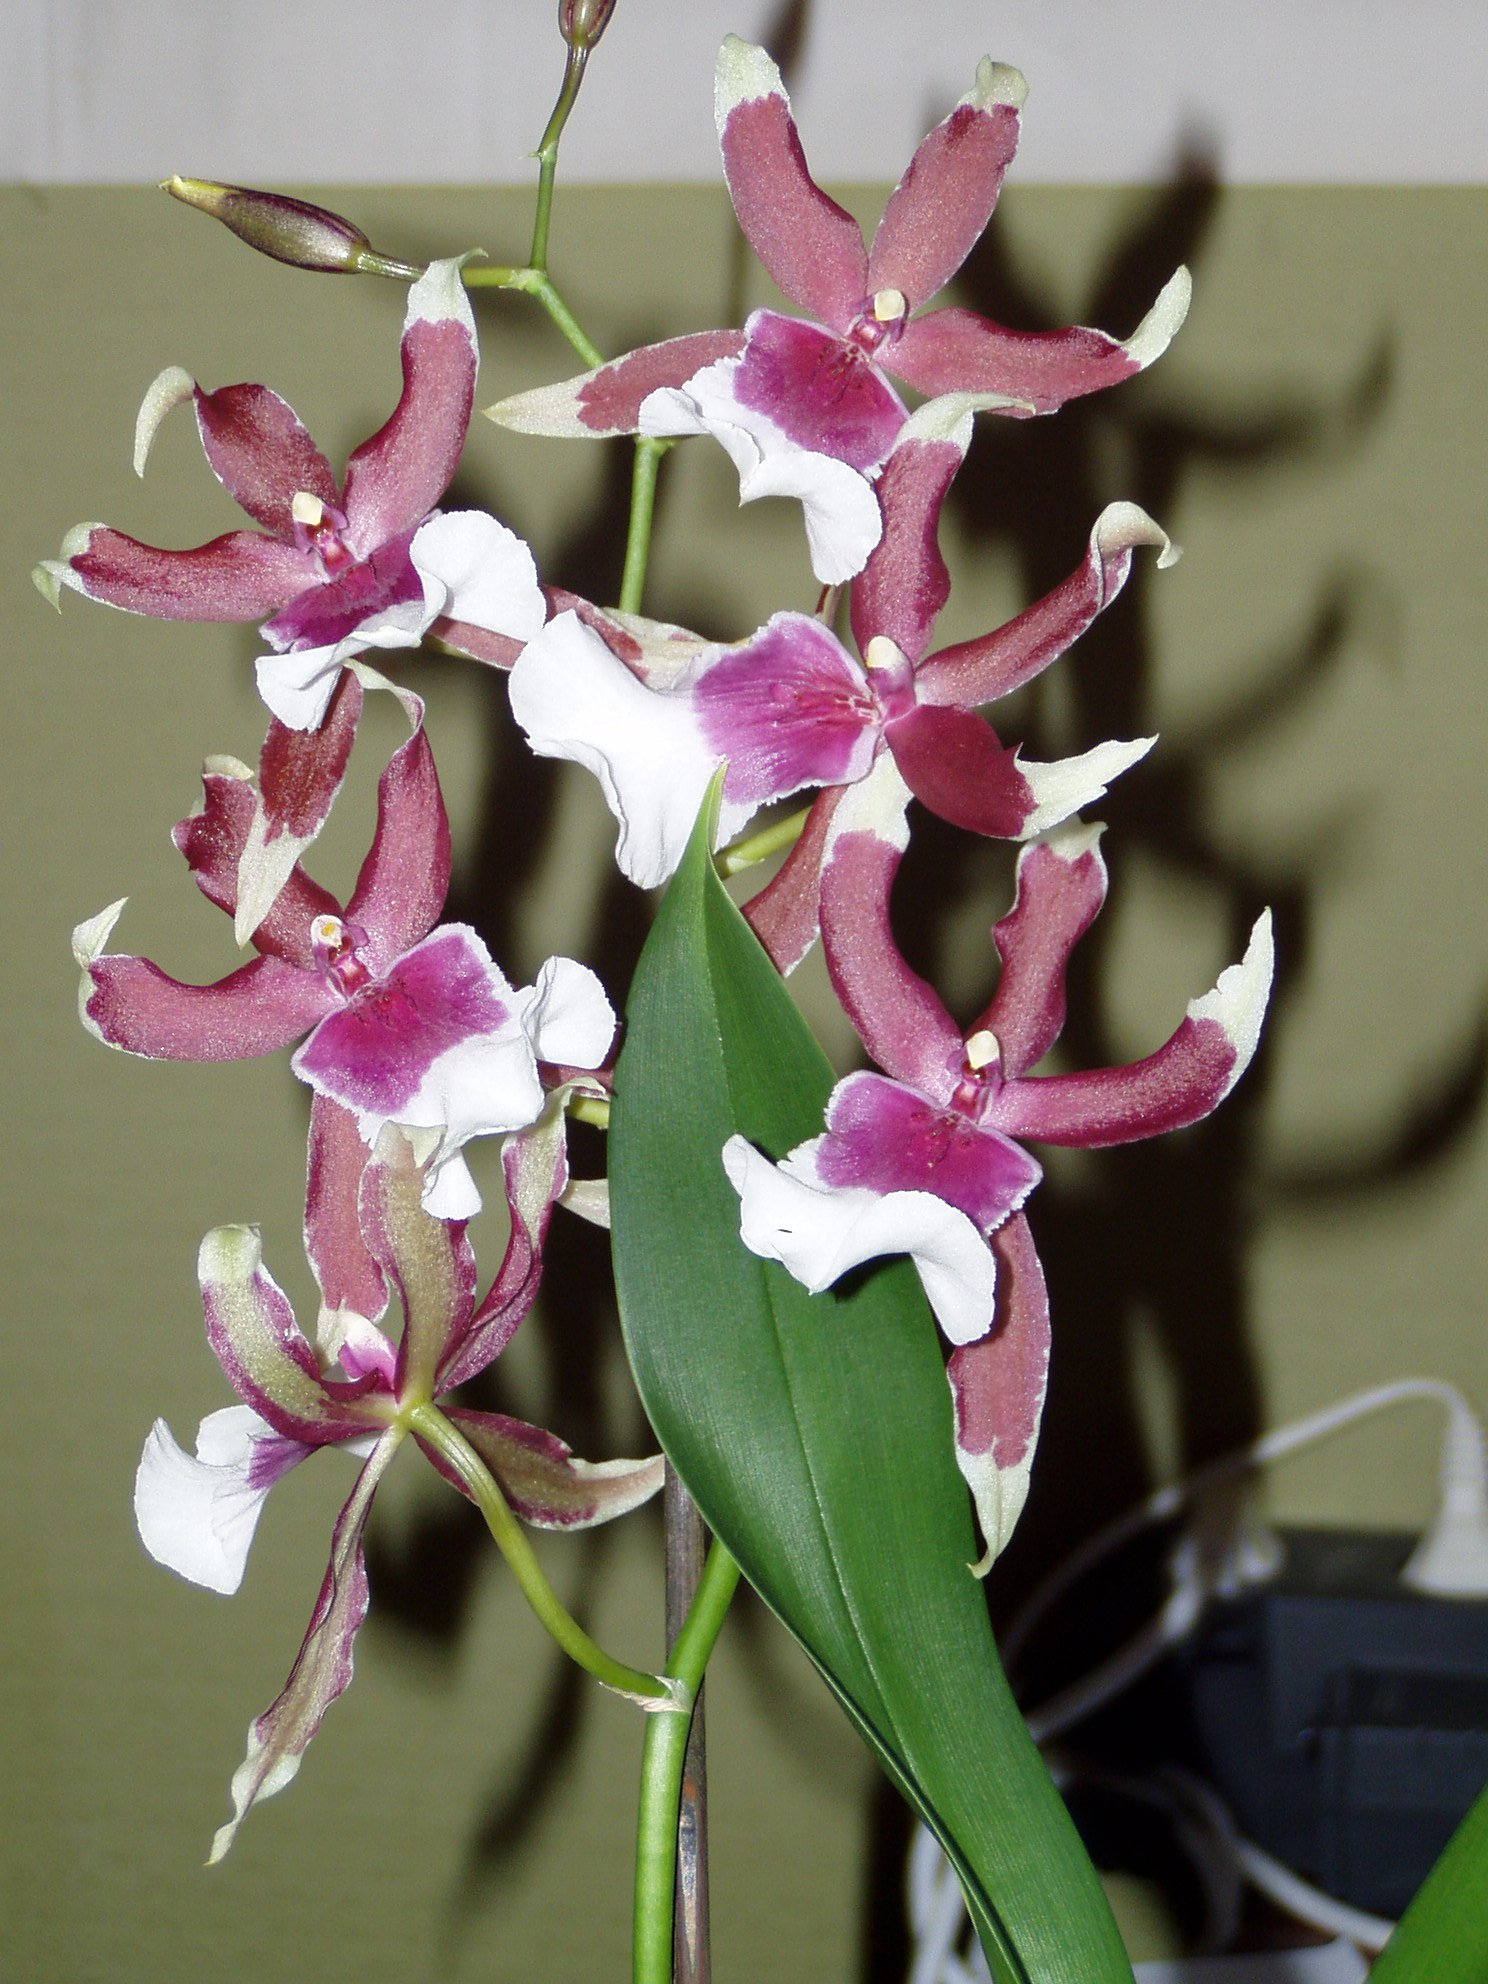 http://upload.wikimedia.org/wikipedia/commons/2/20/Odontoglossum_Cambria.jpg